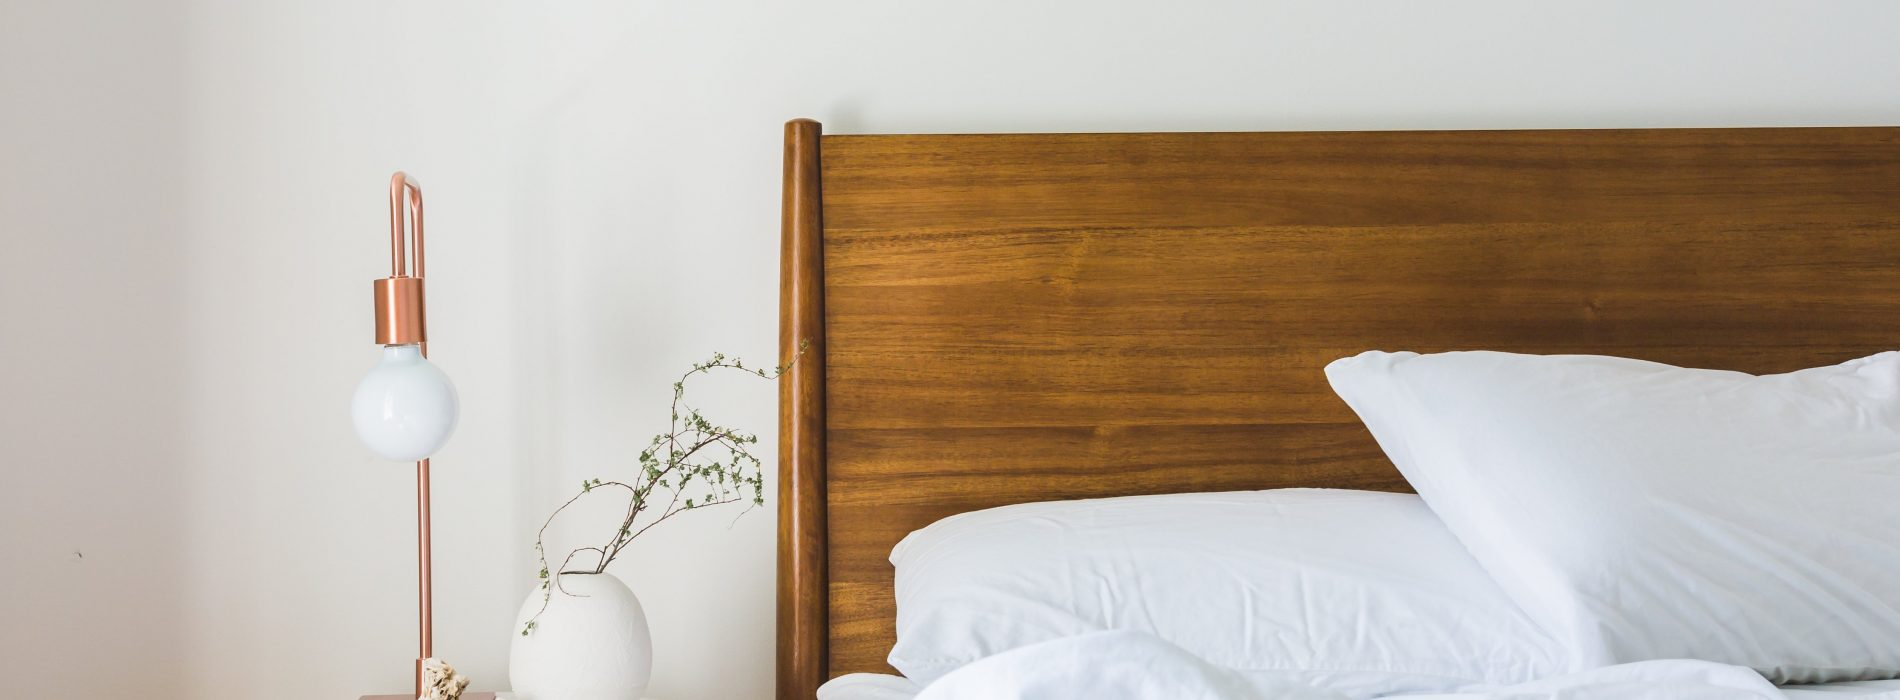 5 Simple Feng Shui Tips for a Quick Bedroom Makeover After Divorce or Breakup